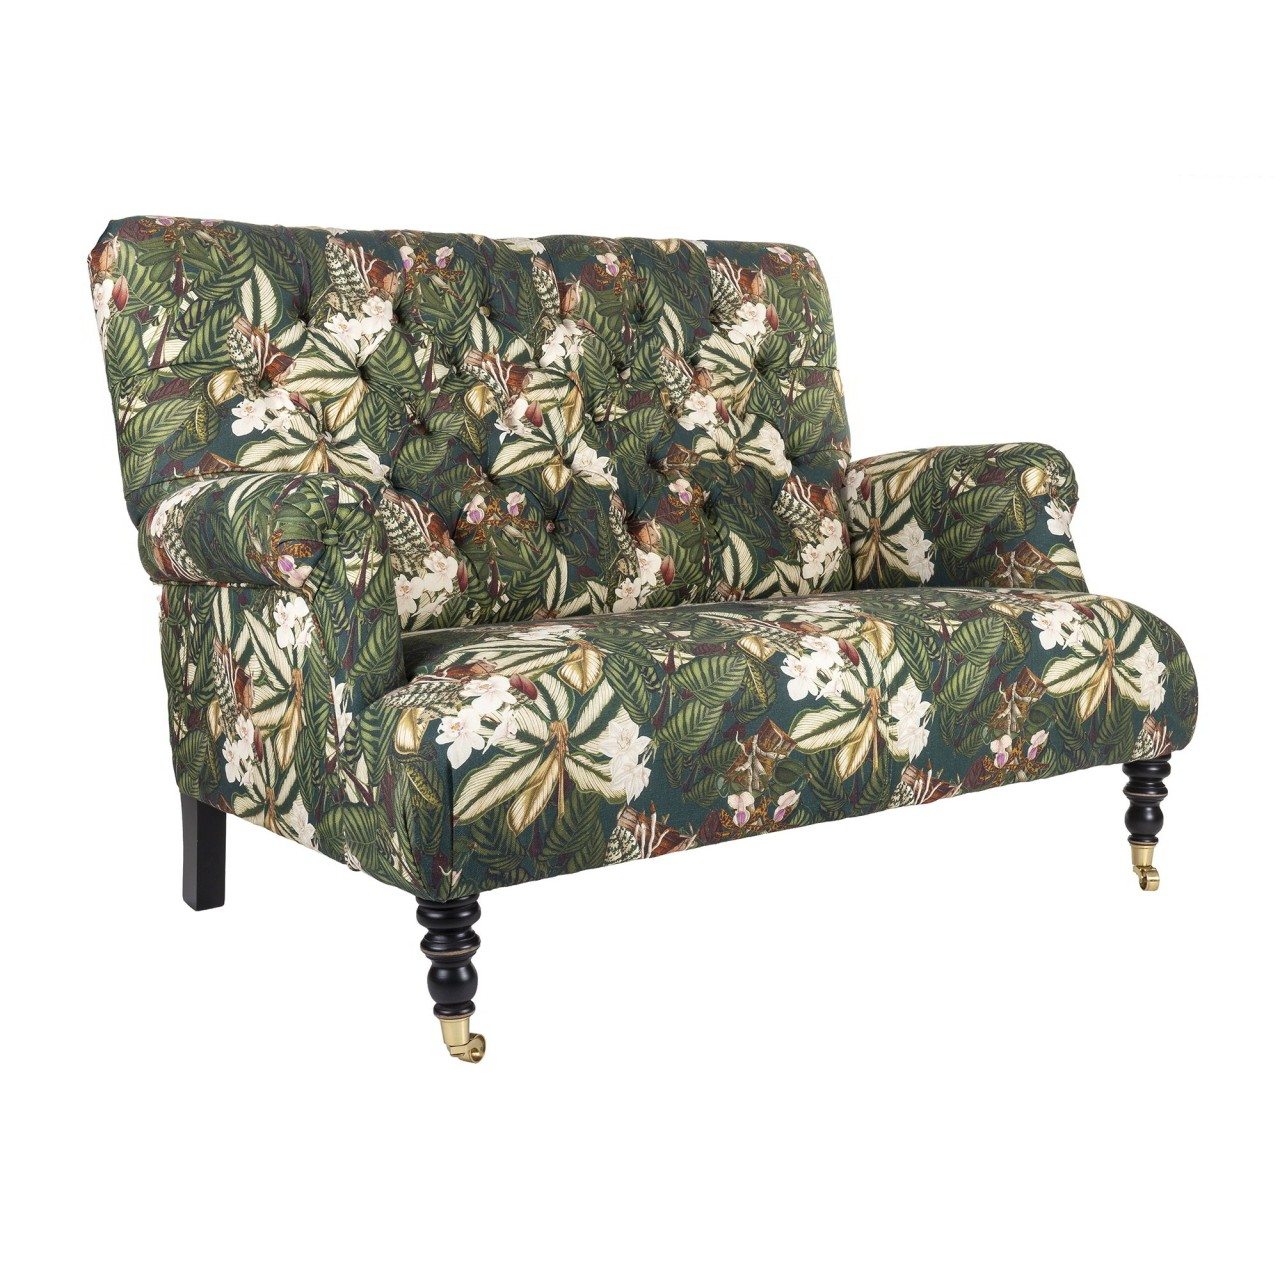 TRUMAN Sofa - ORCHID BLOOM Linen